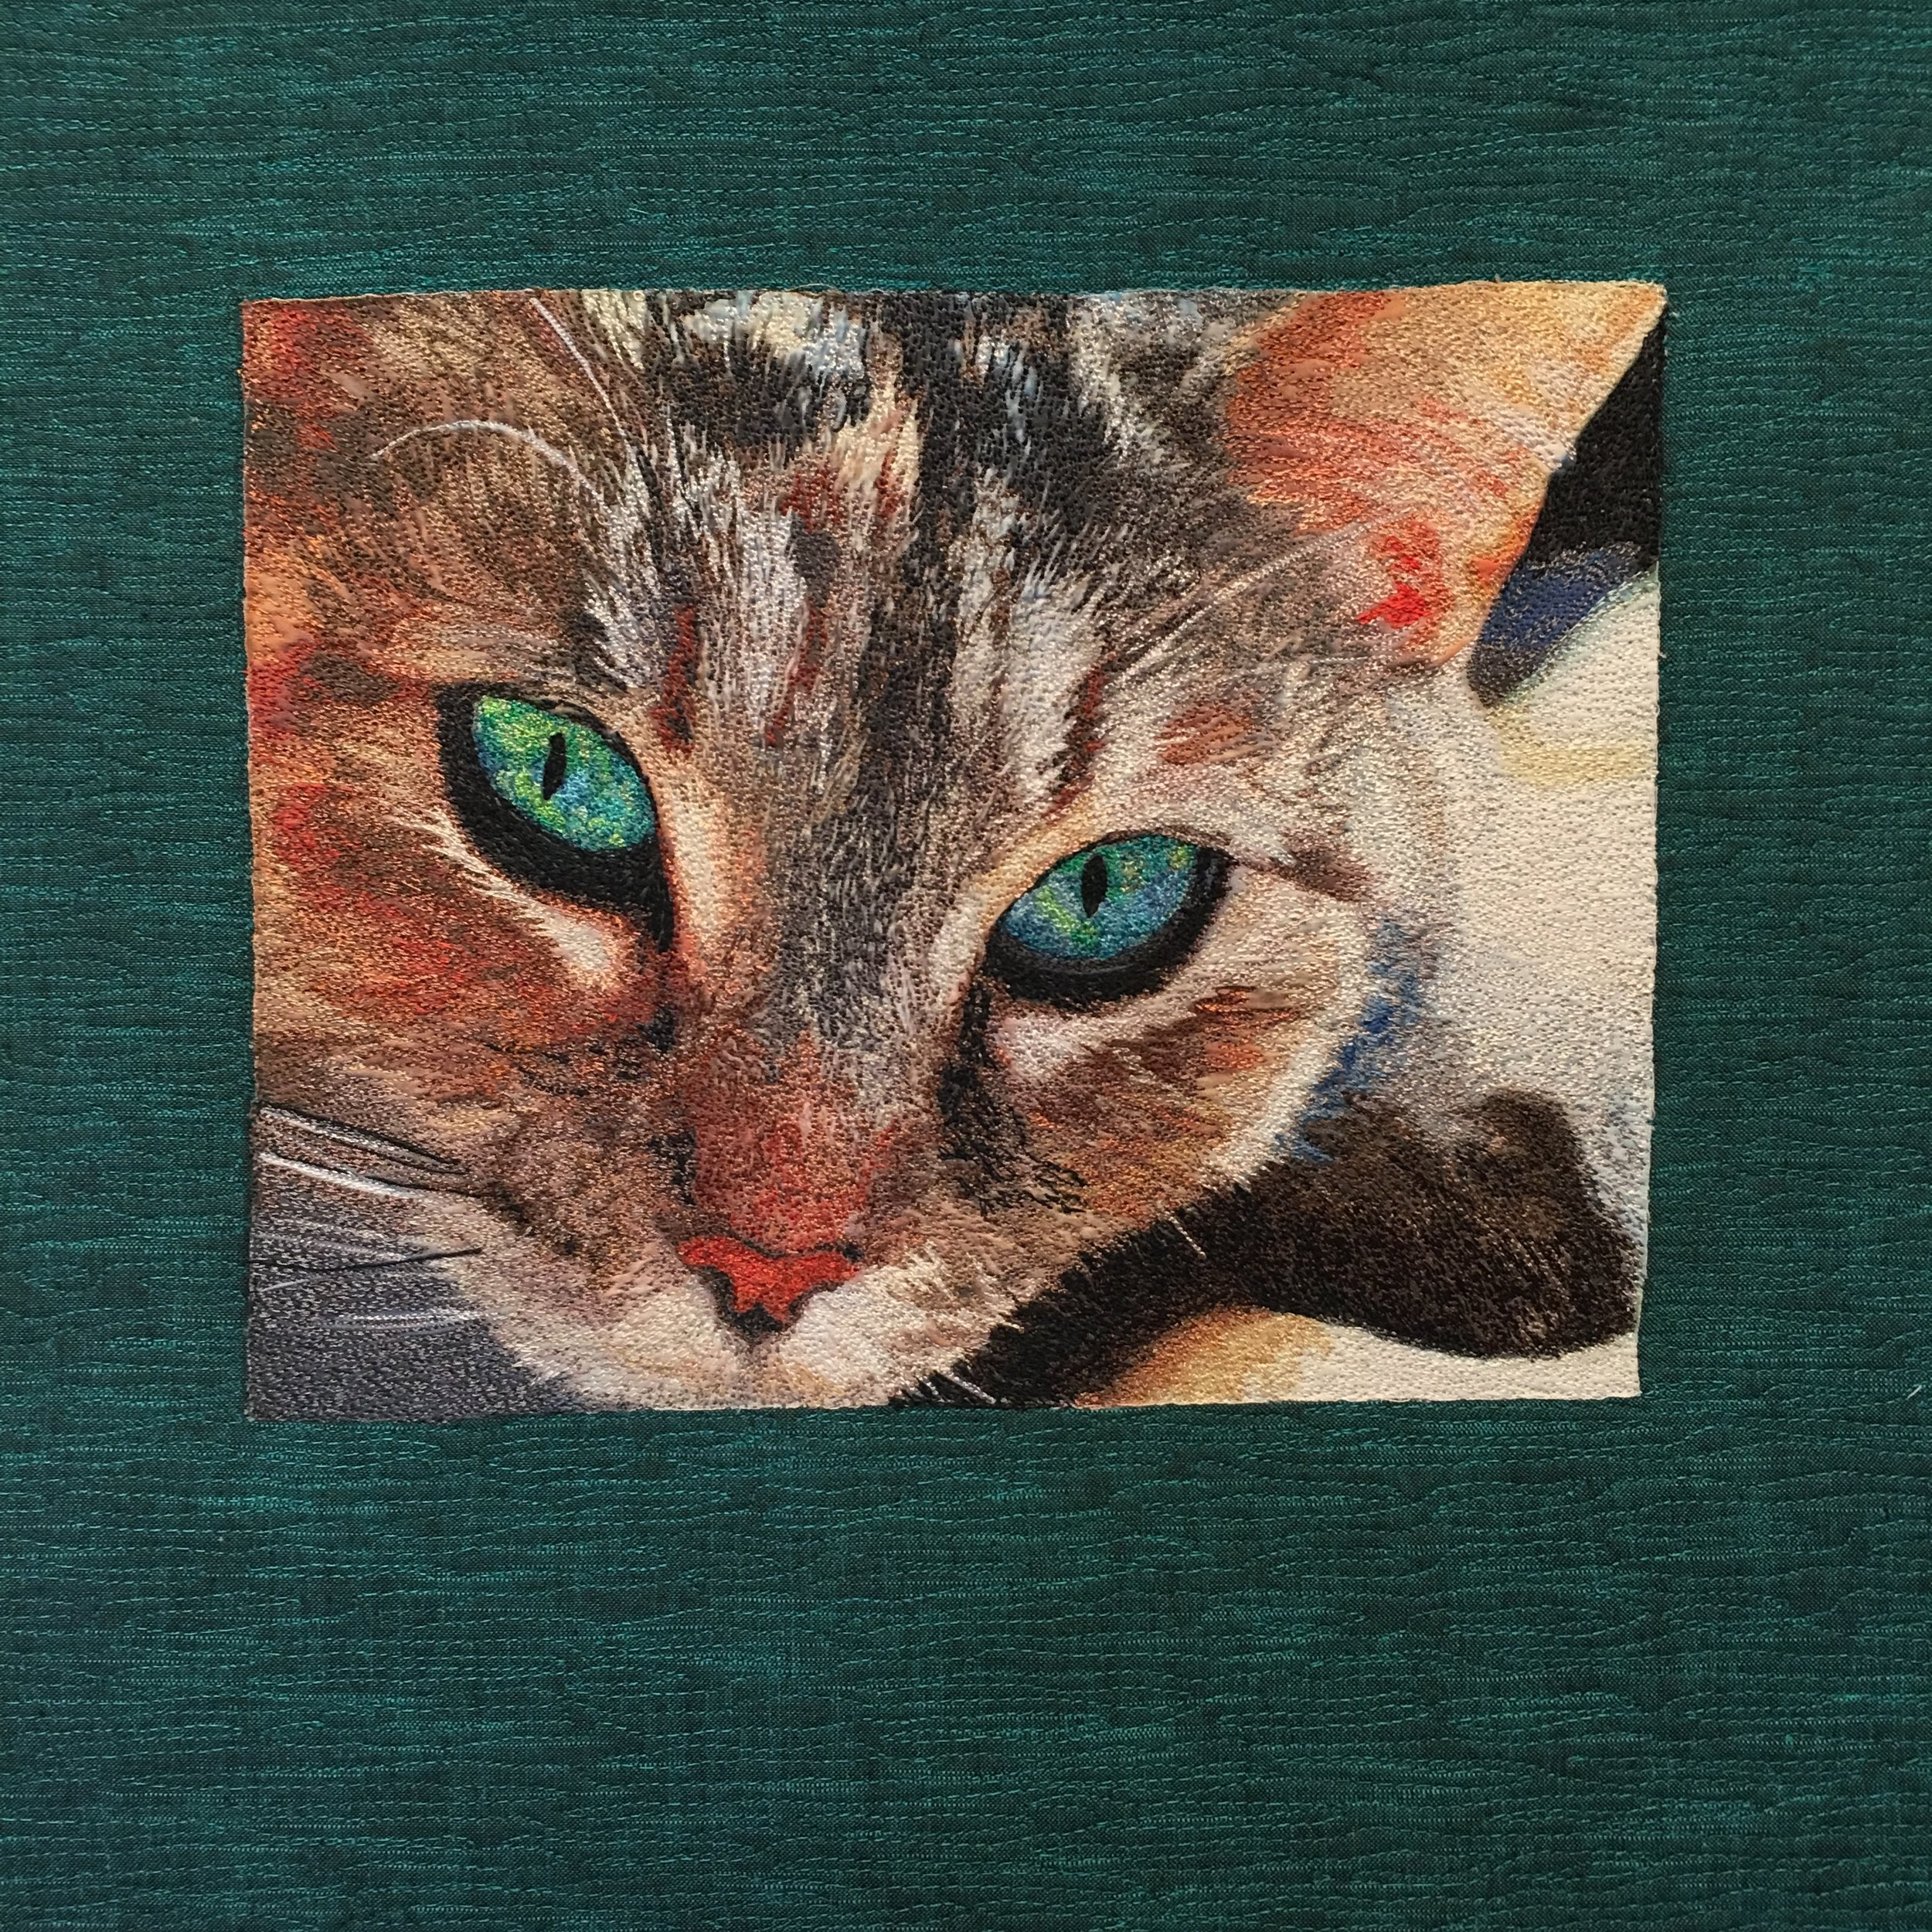 Using a stock photo (photographer unknown), Sandra decided to practice on a beautiful house cat. A simple quilted border frames the work.